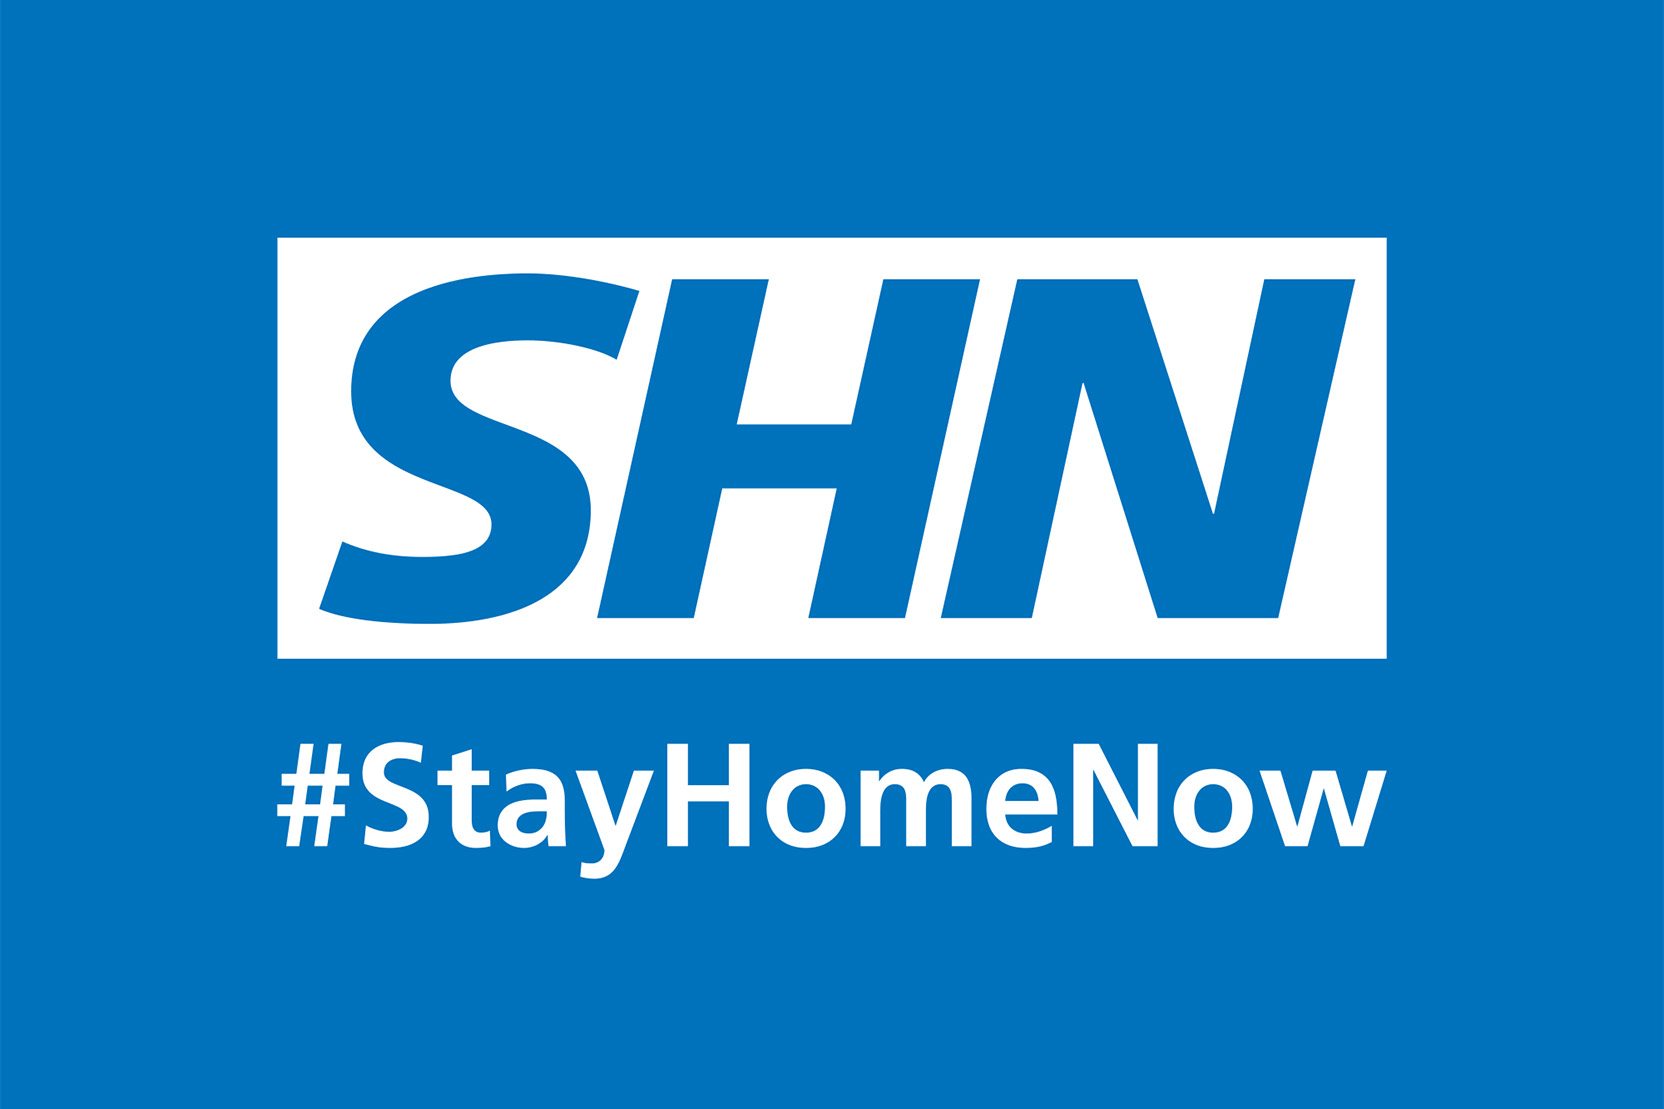 Stay home now logo